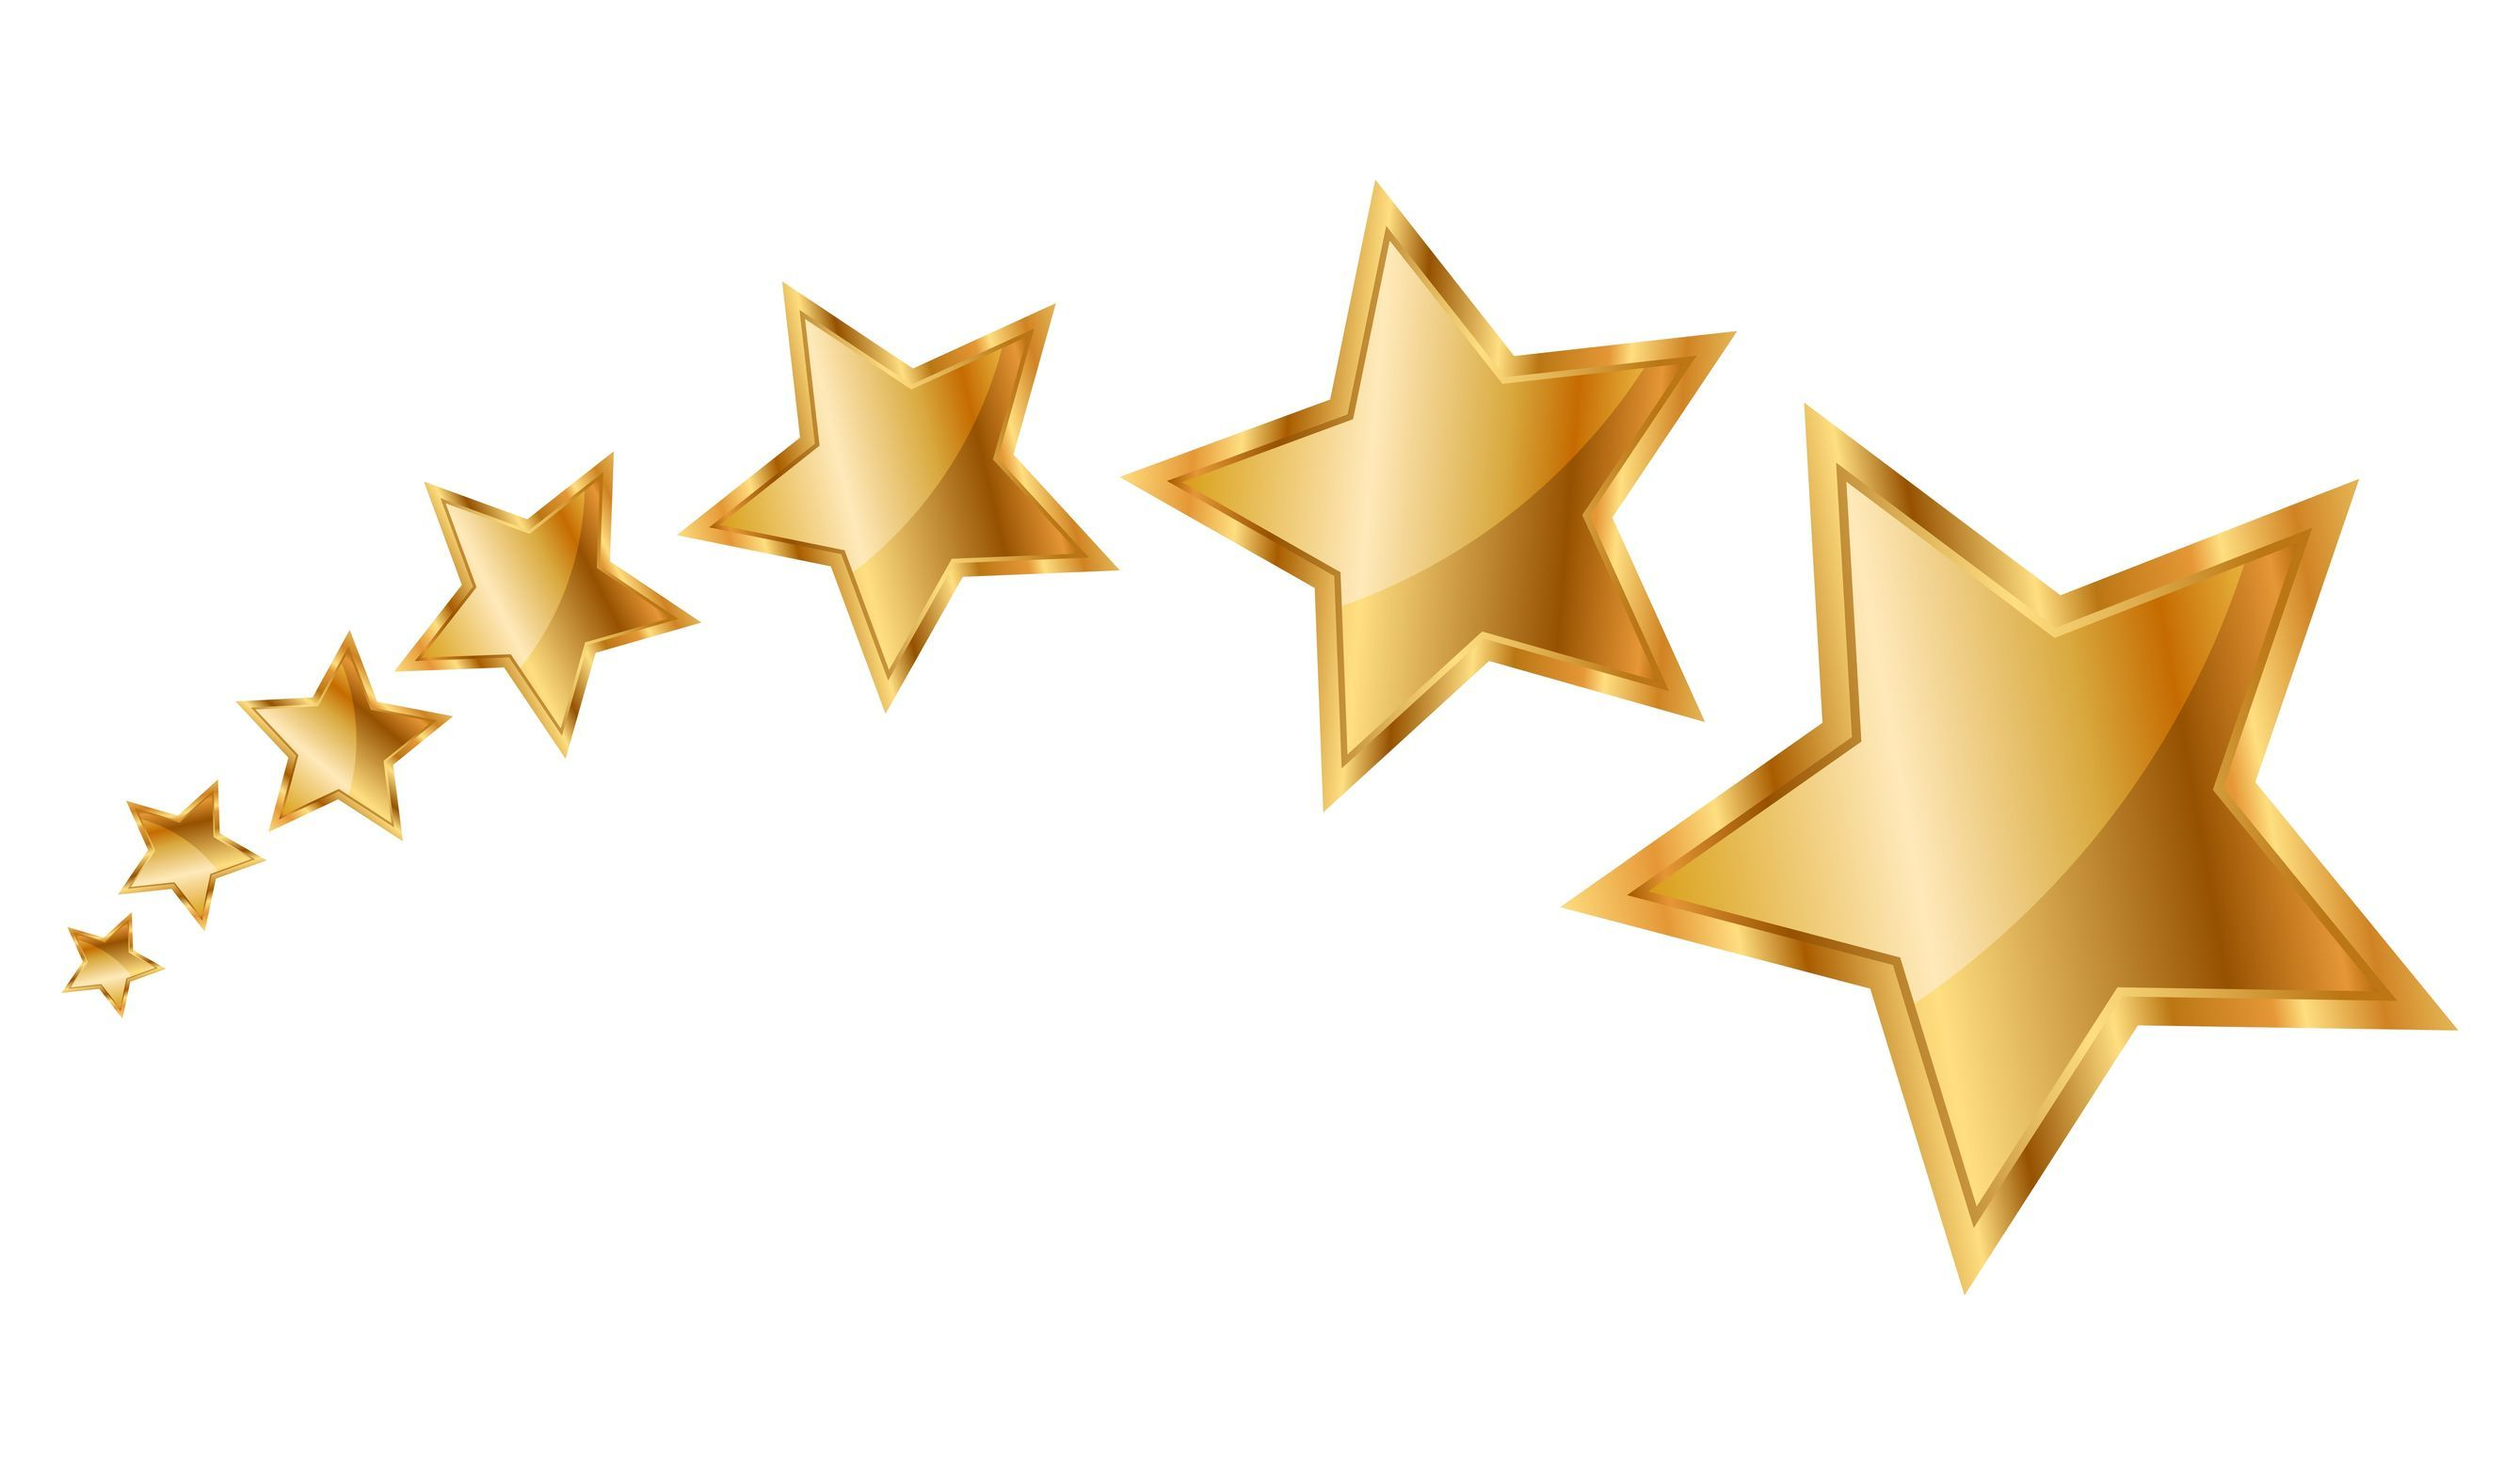 Gold star star clipart and animated graphics of stars image #28234.